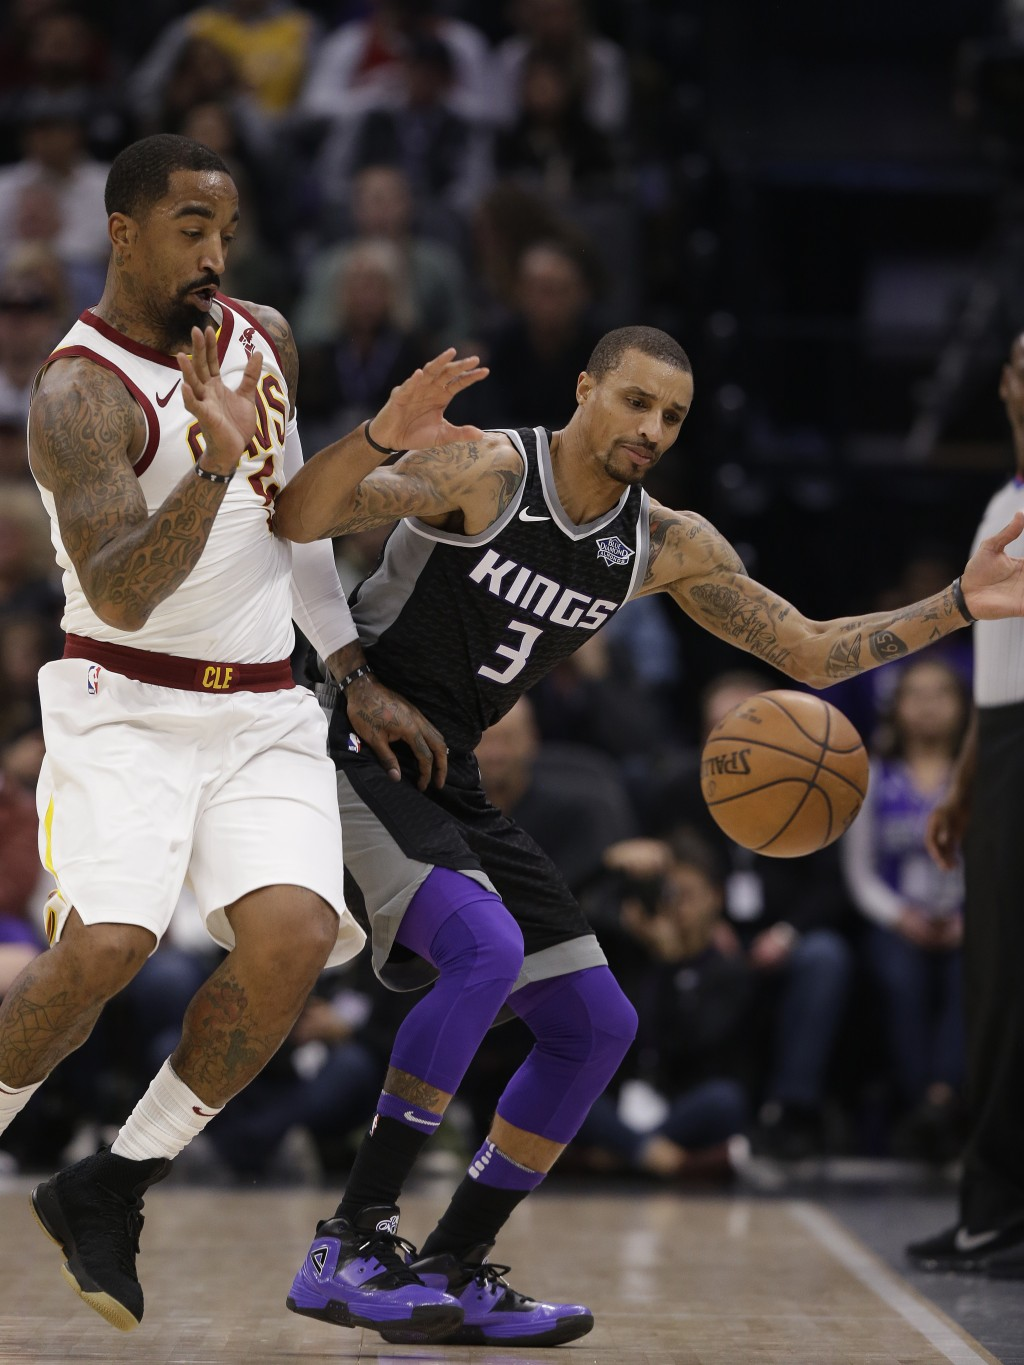 Cleveland Cavaliers guard J.R. Smith, left, and Sacramento Kings guard George Hill chase after the ball as it goes out of bounds during the first quar...